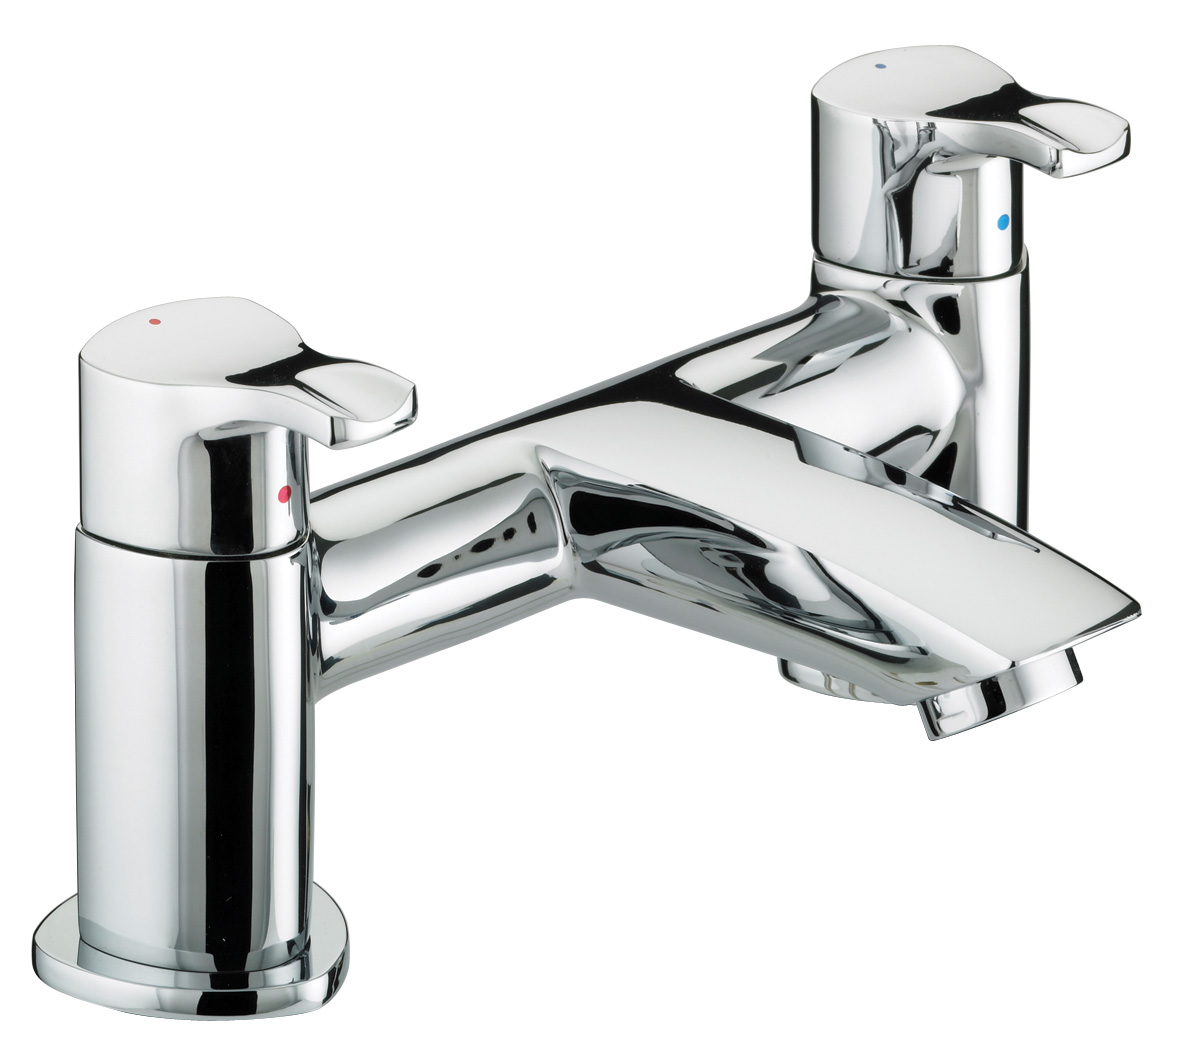 BRISTAN CAPRI PILLAR BATH FILLER